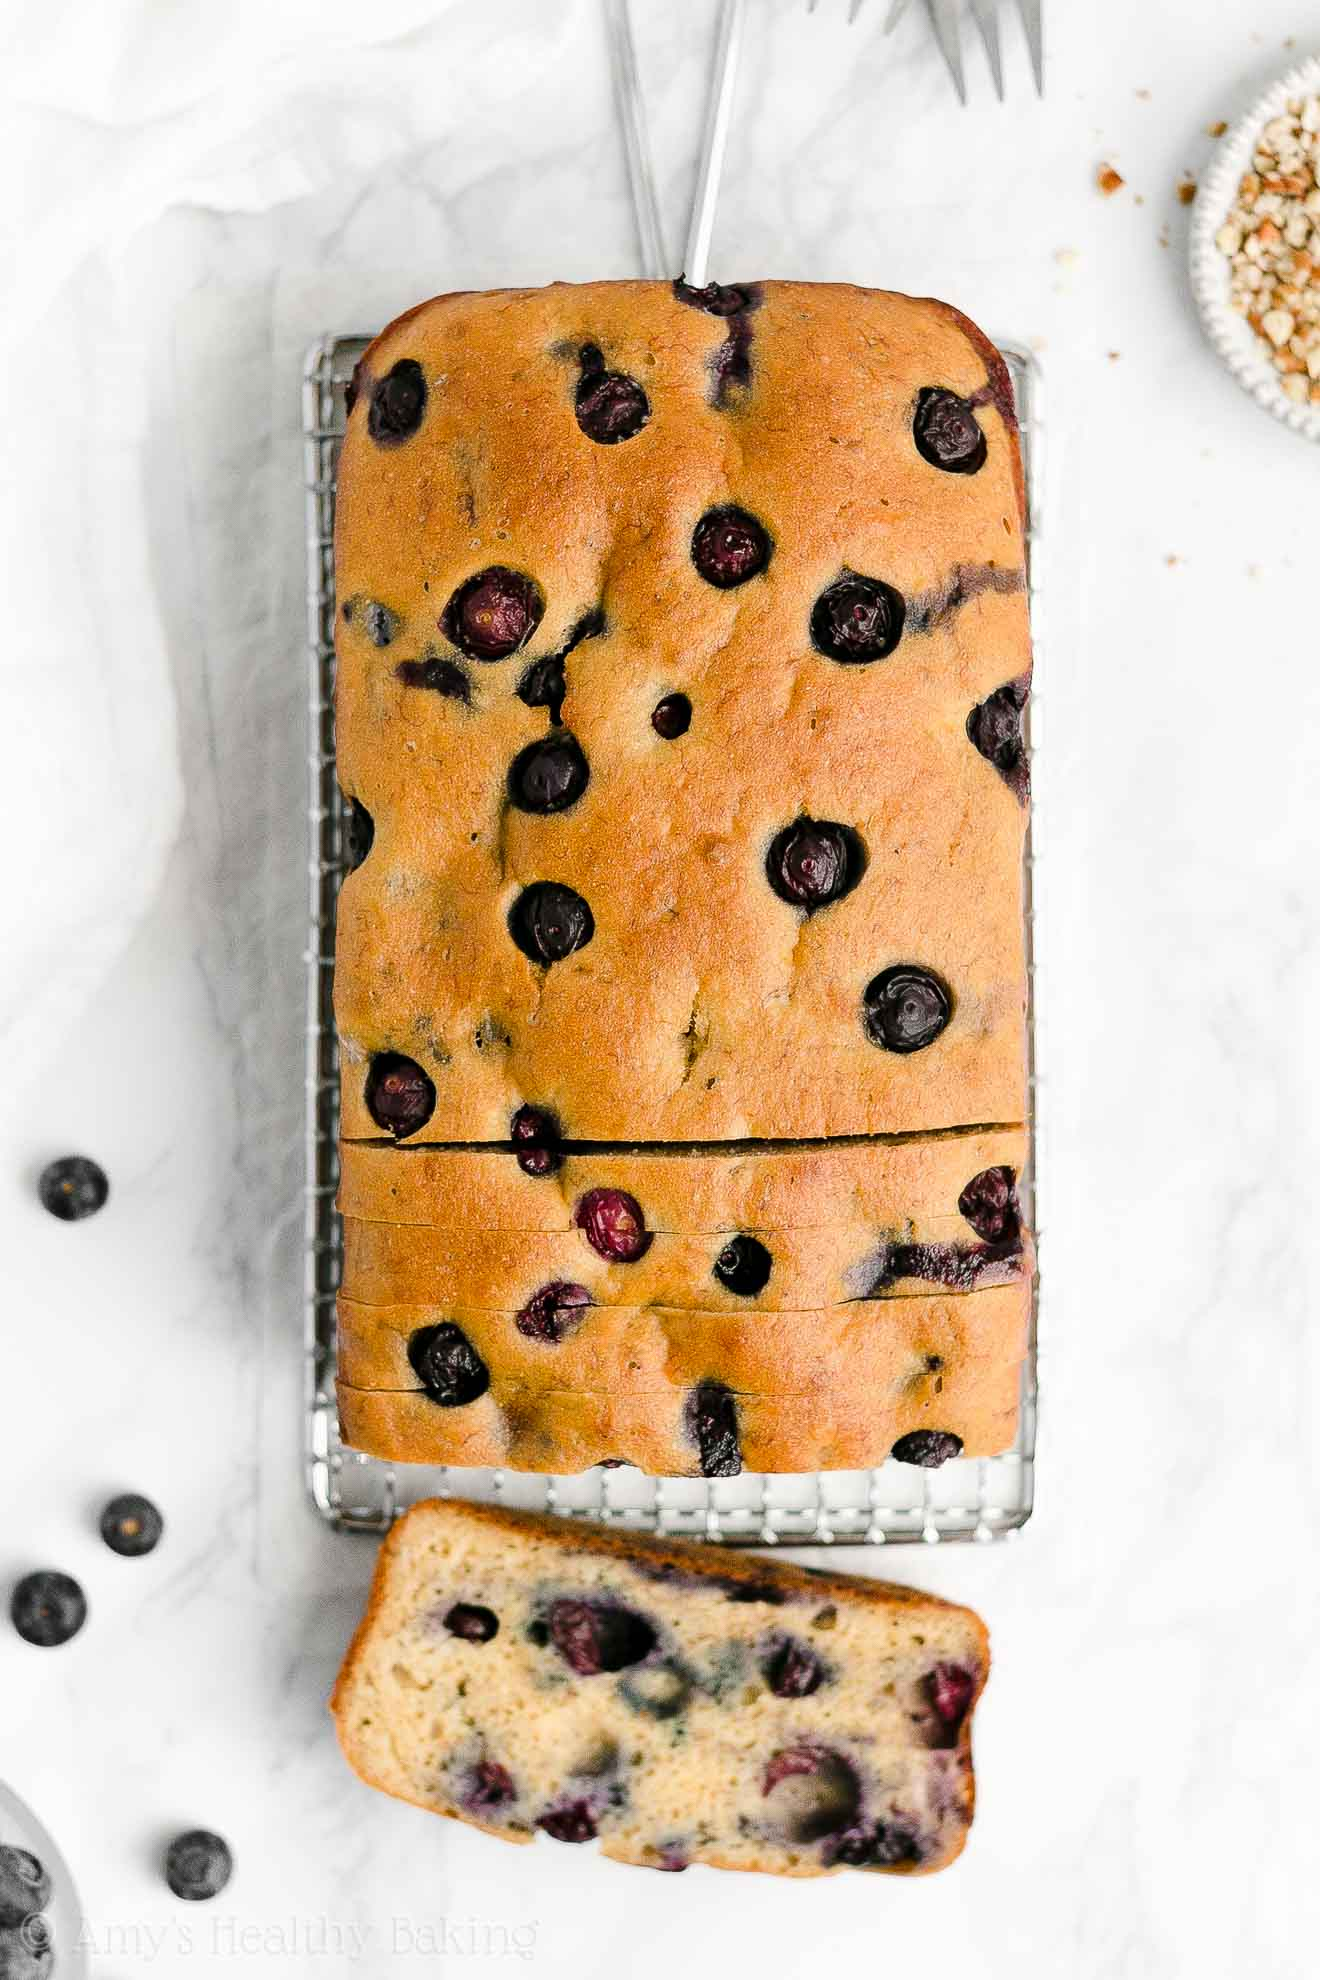 Easy Healthy Whole Wheat Low Fat Low Sugar Blueberry Almond Banana Bread